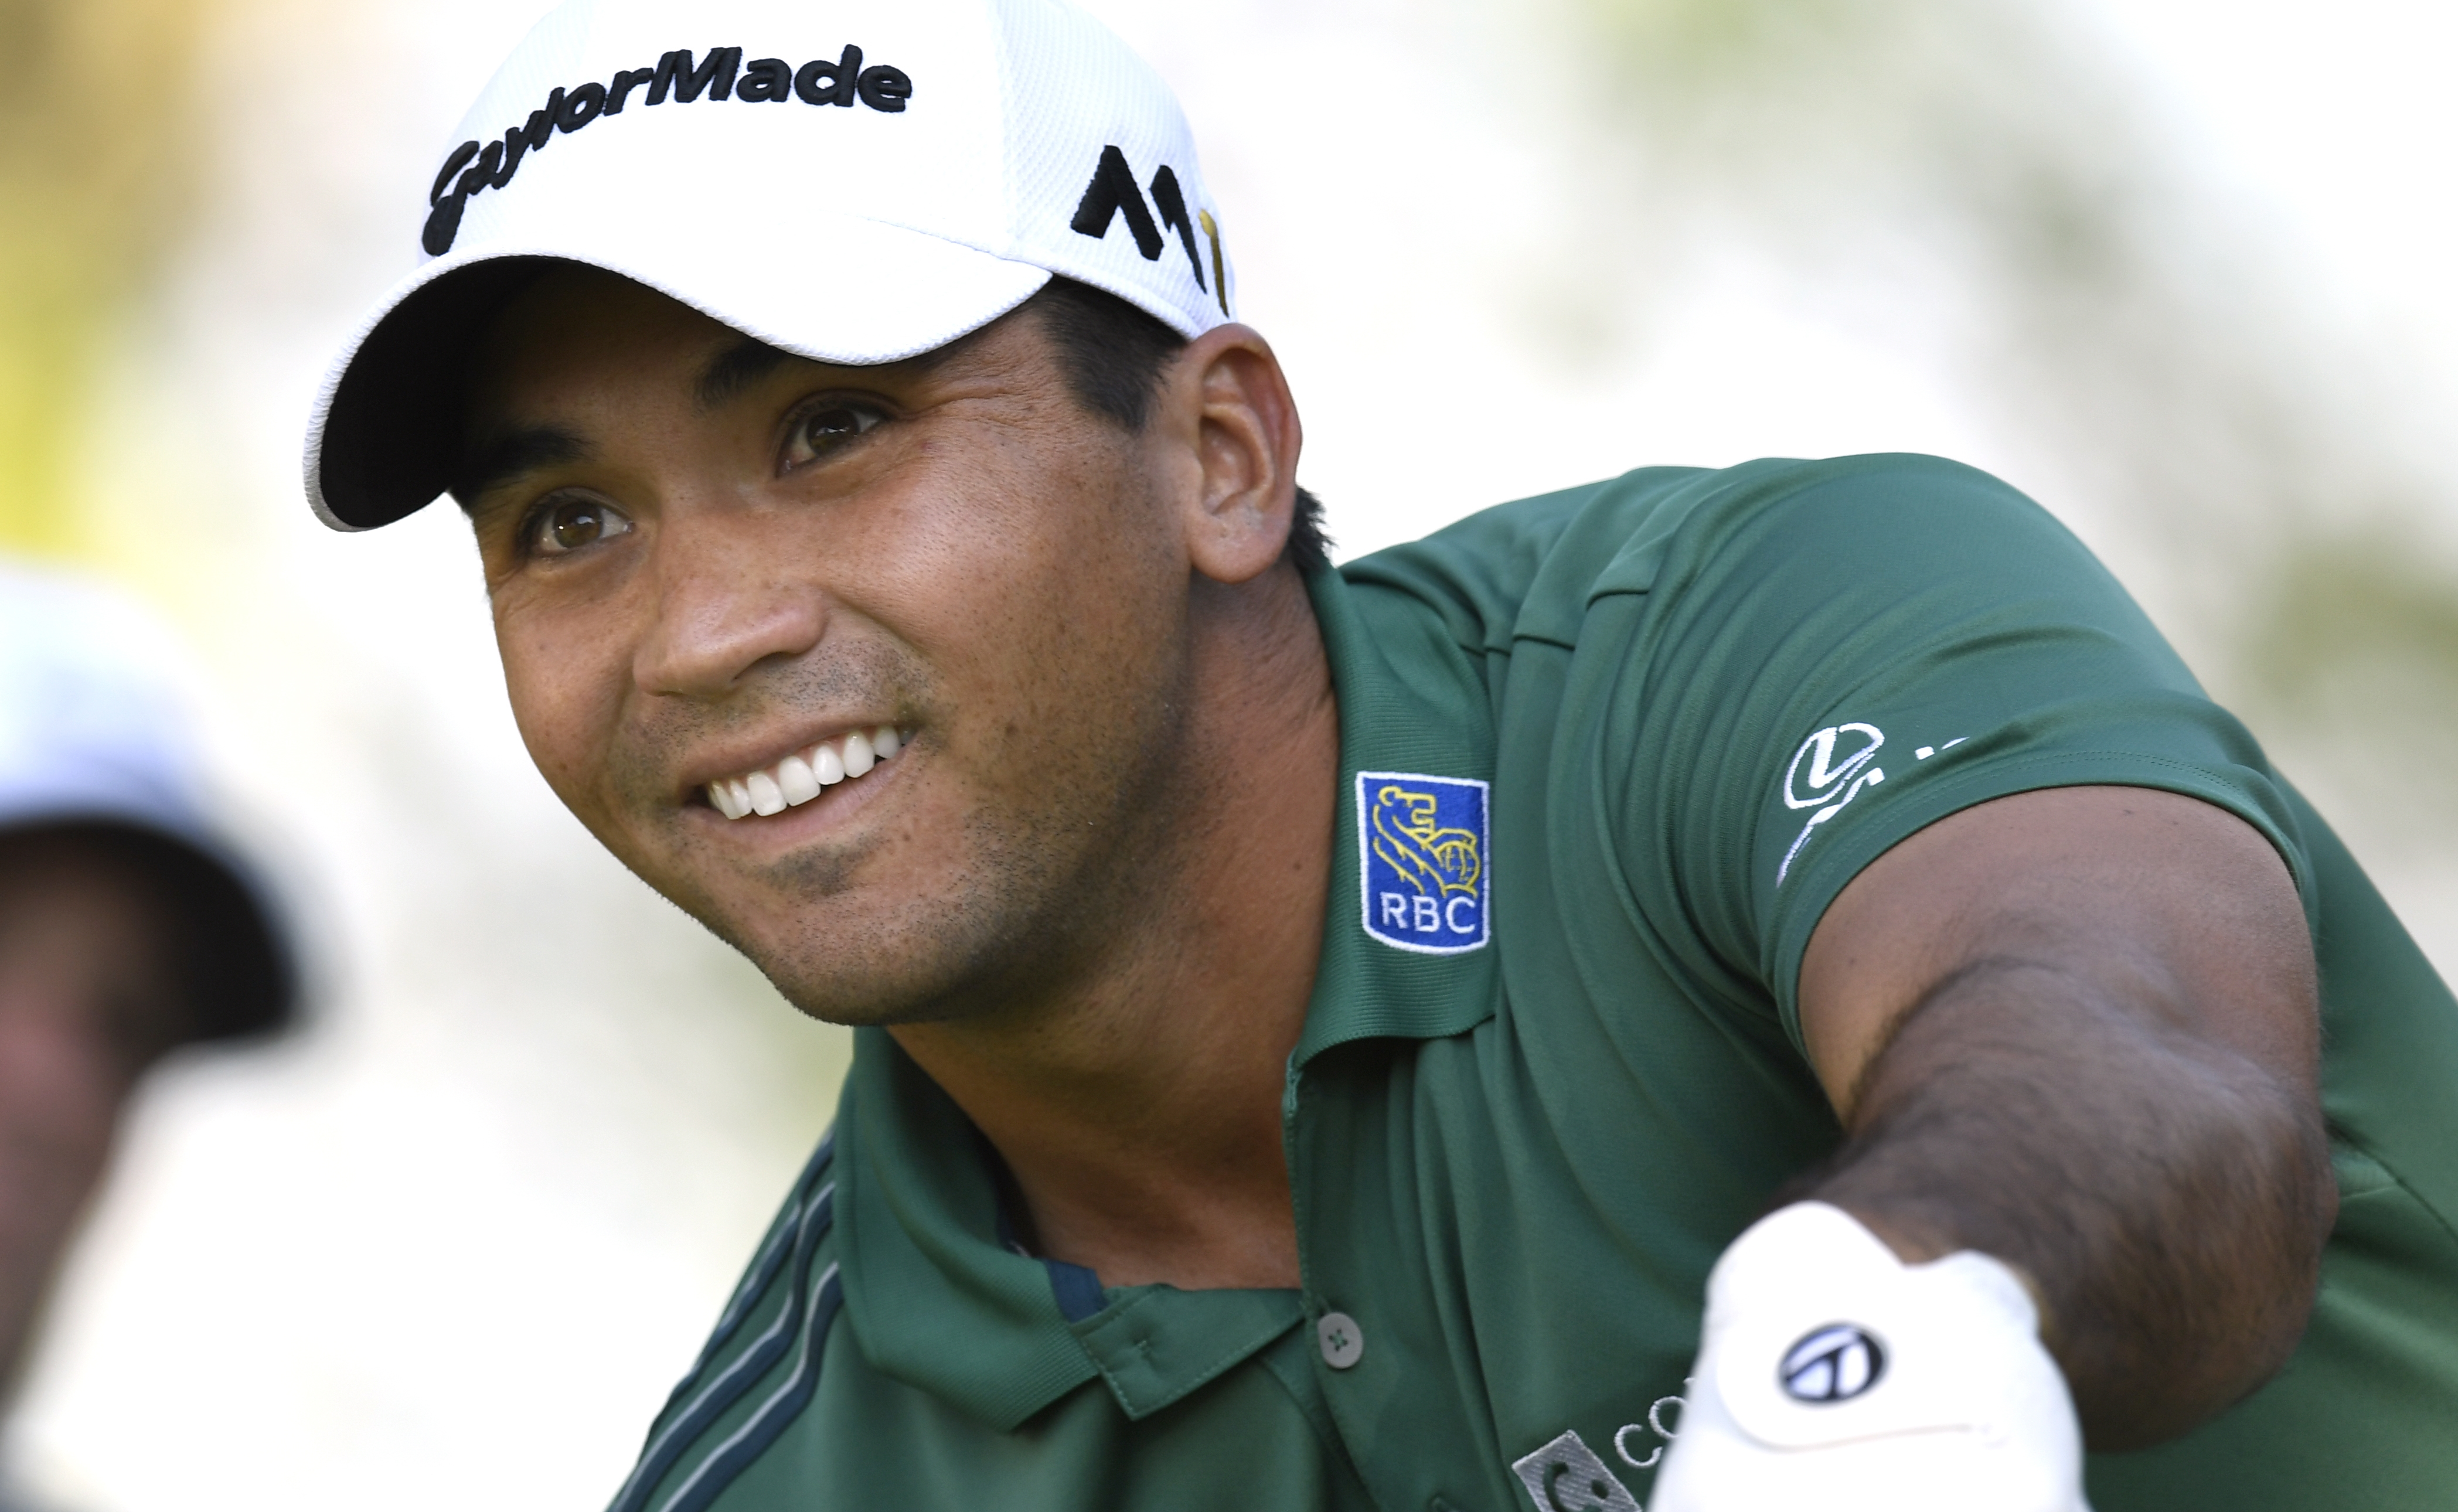 Nike reportedly signs Jason Day to apparel deal - Golf Canada 452def436f4